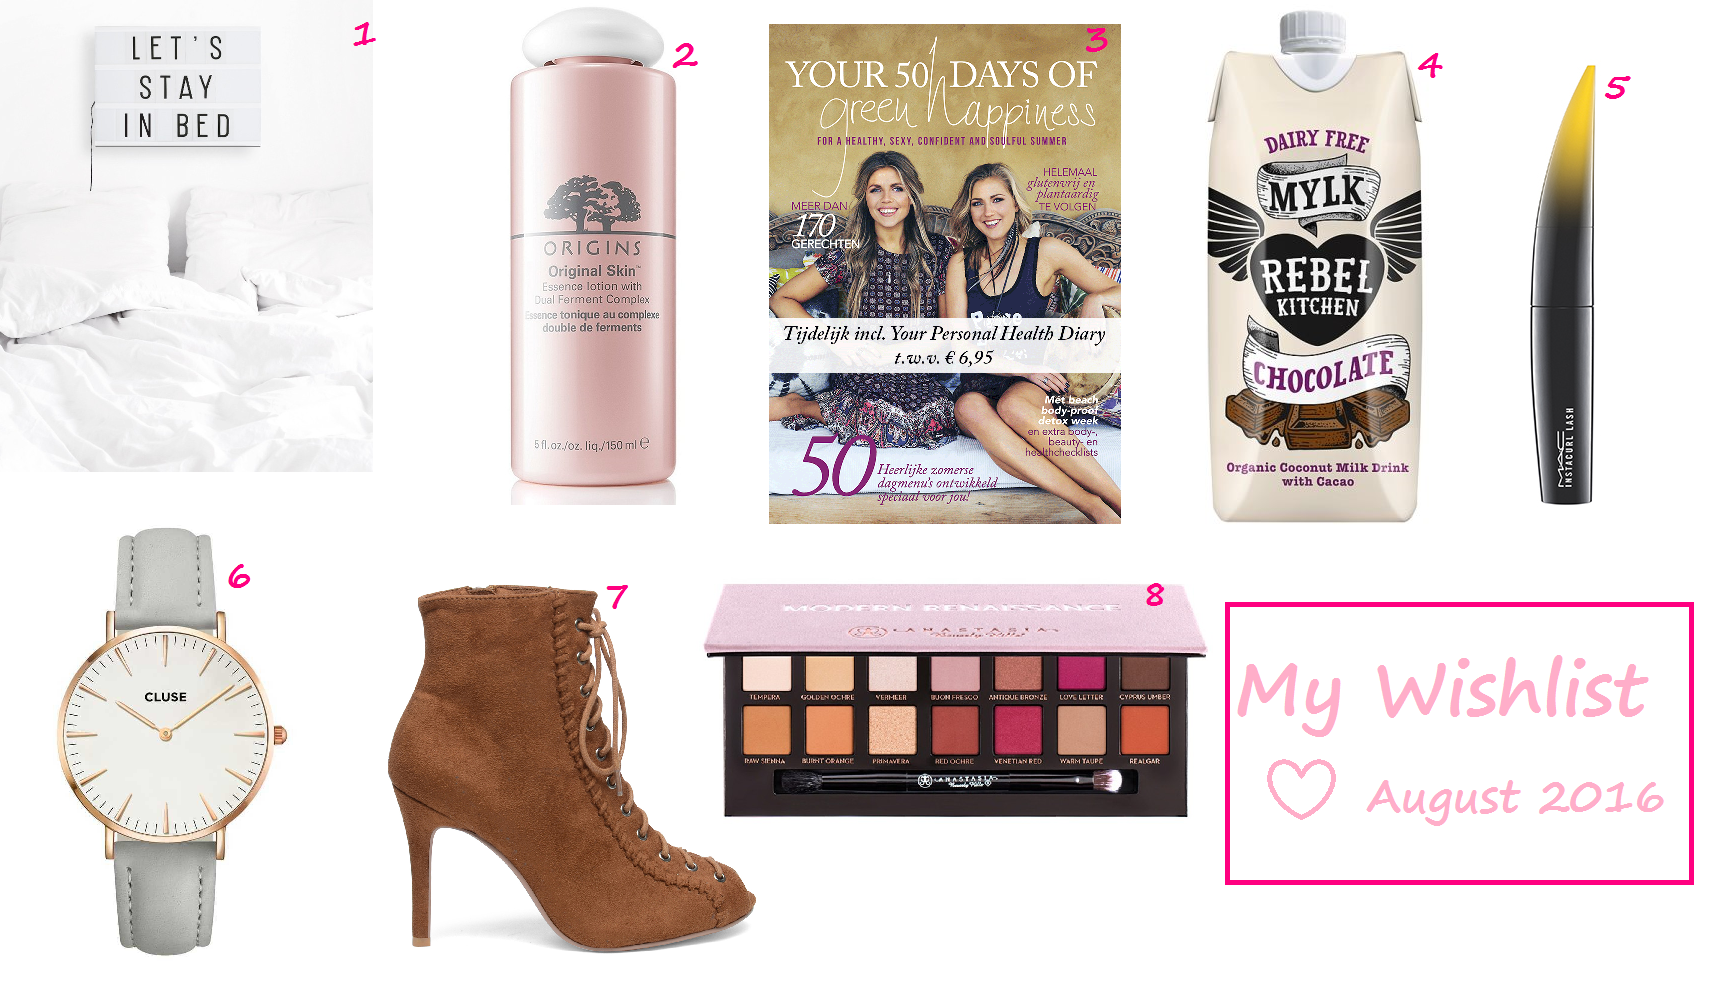 My Wishlist ♥ August 2016